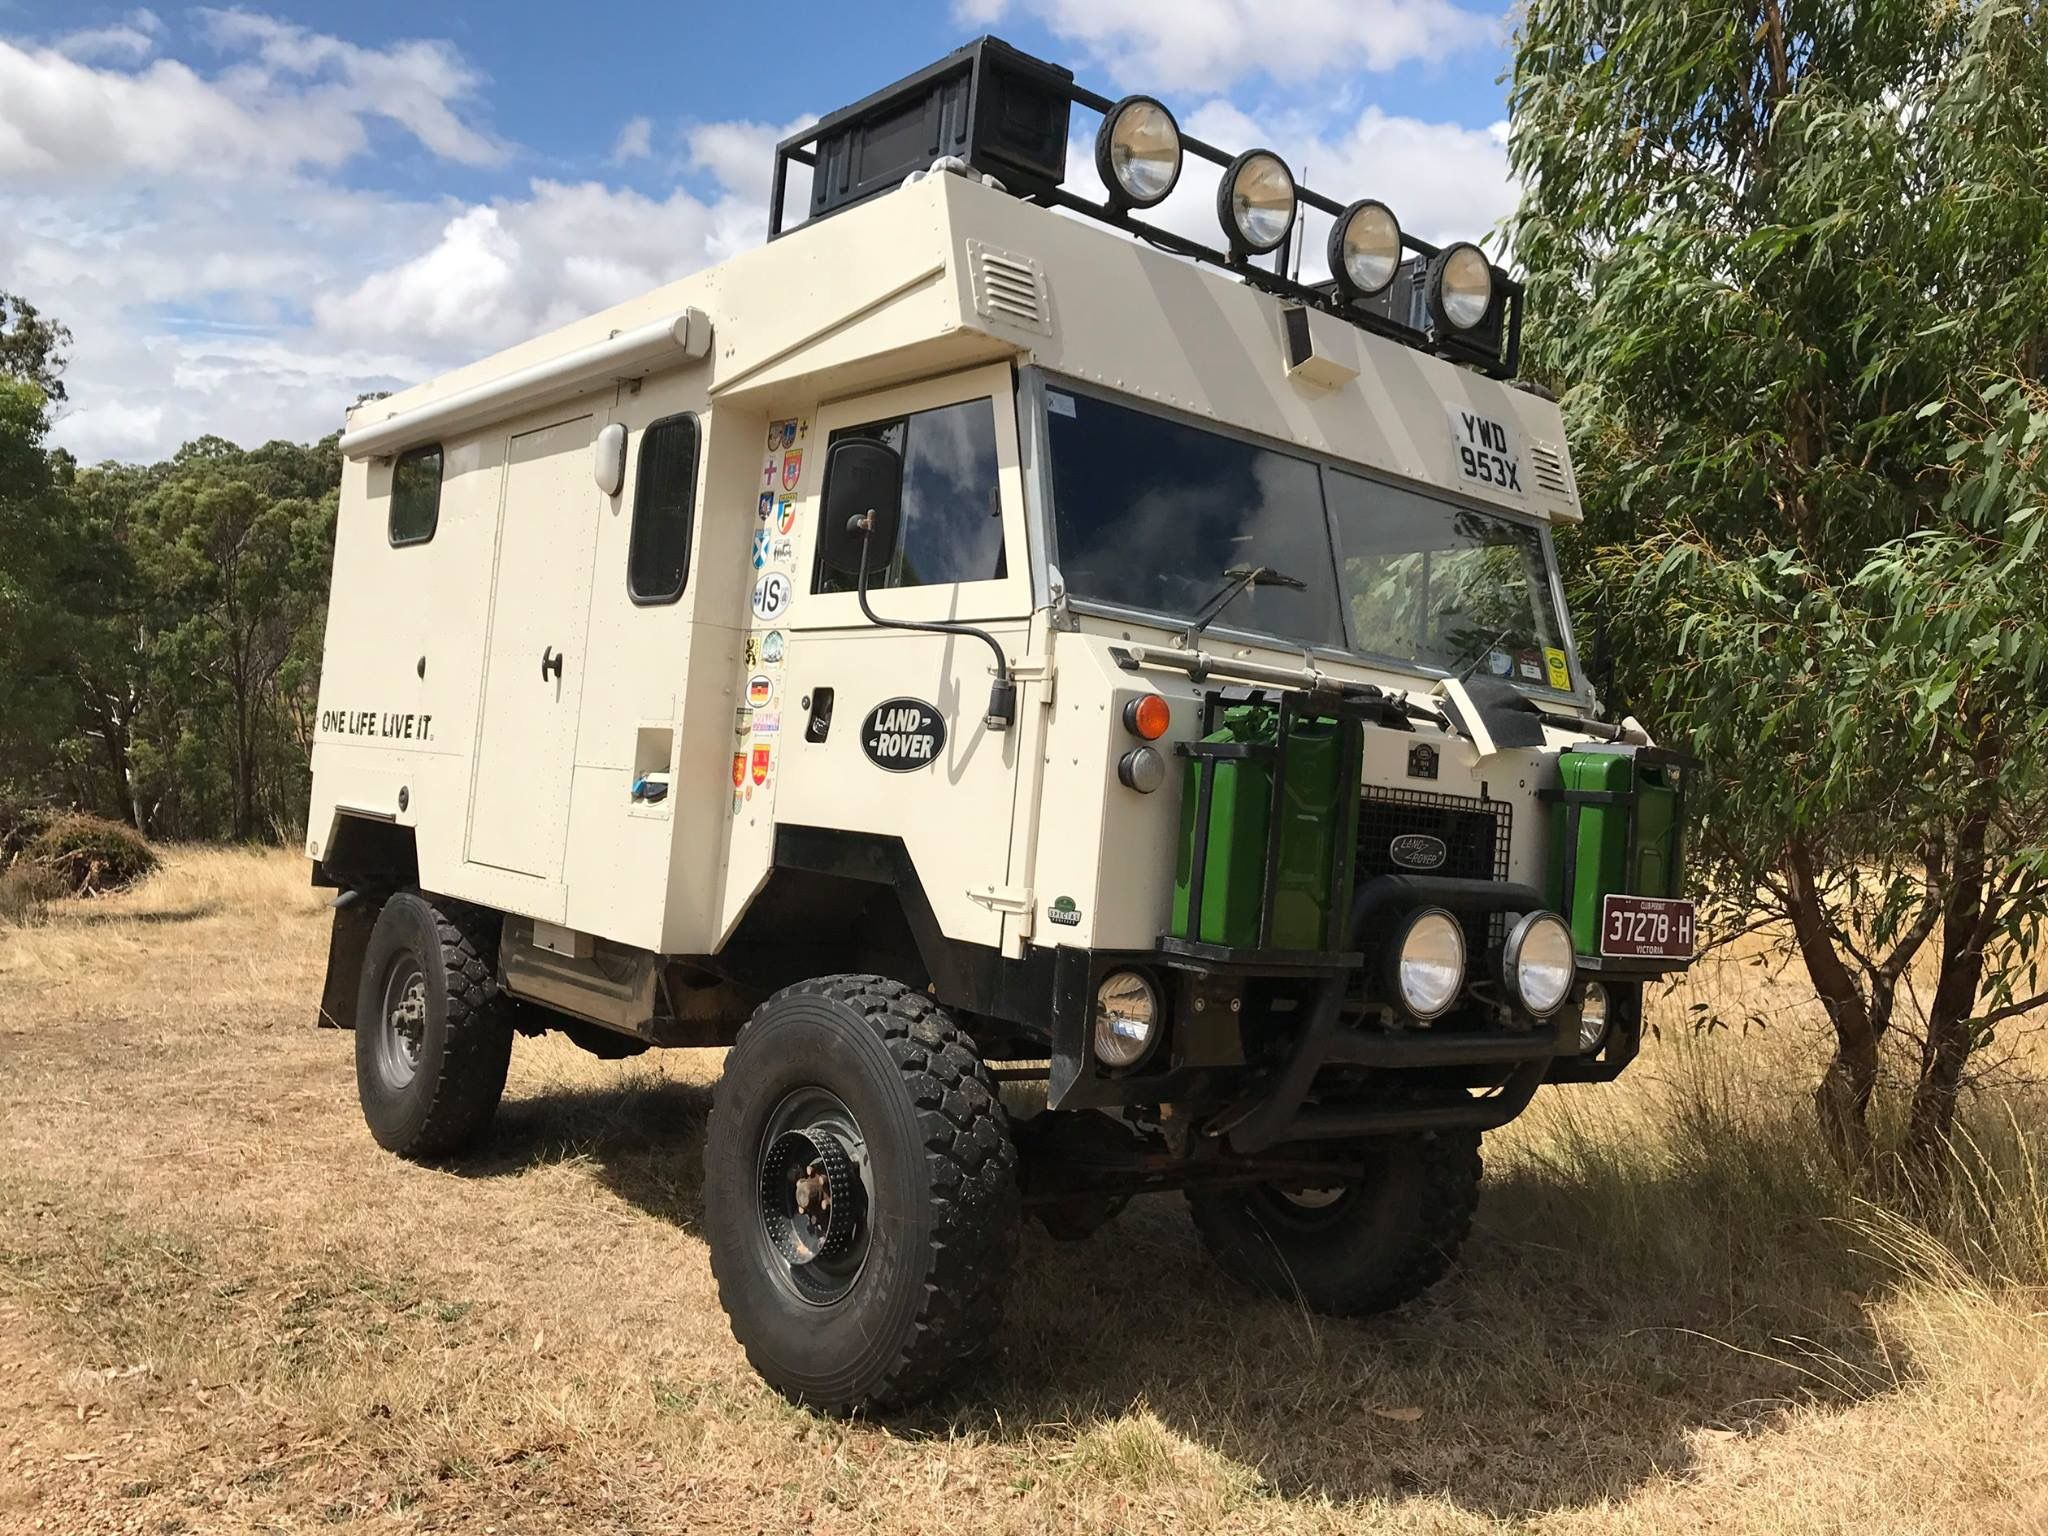 Landrover 101 Camper Land Rover Off Road Camping Expedition